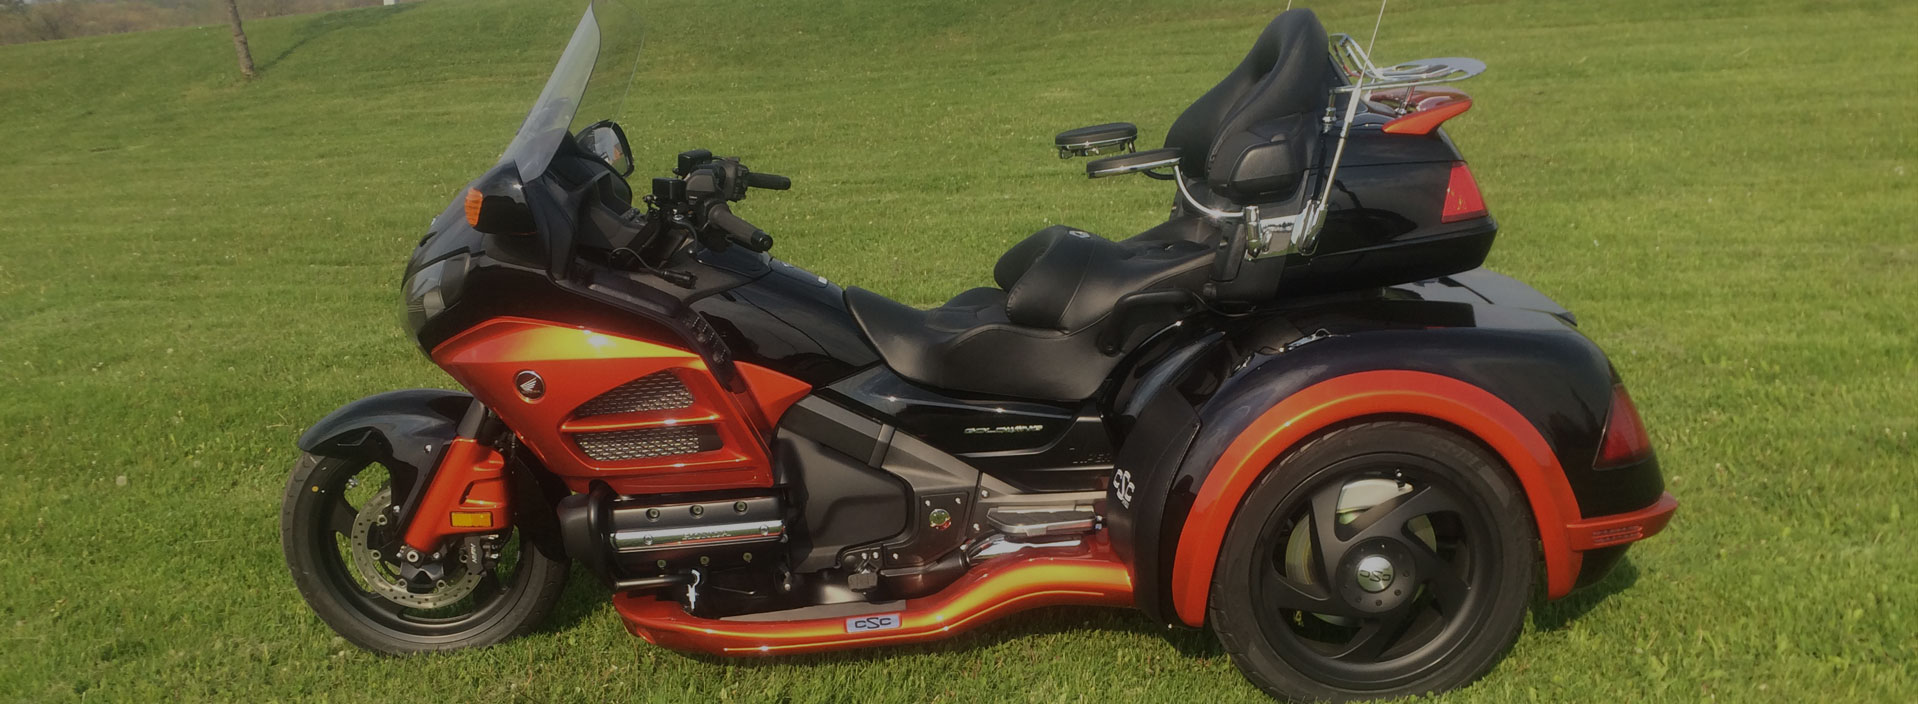 Harley Trikes For Sale >> Trikes By Rodney - Motorcycle Trike Conversion - Zanesville, Ohio